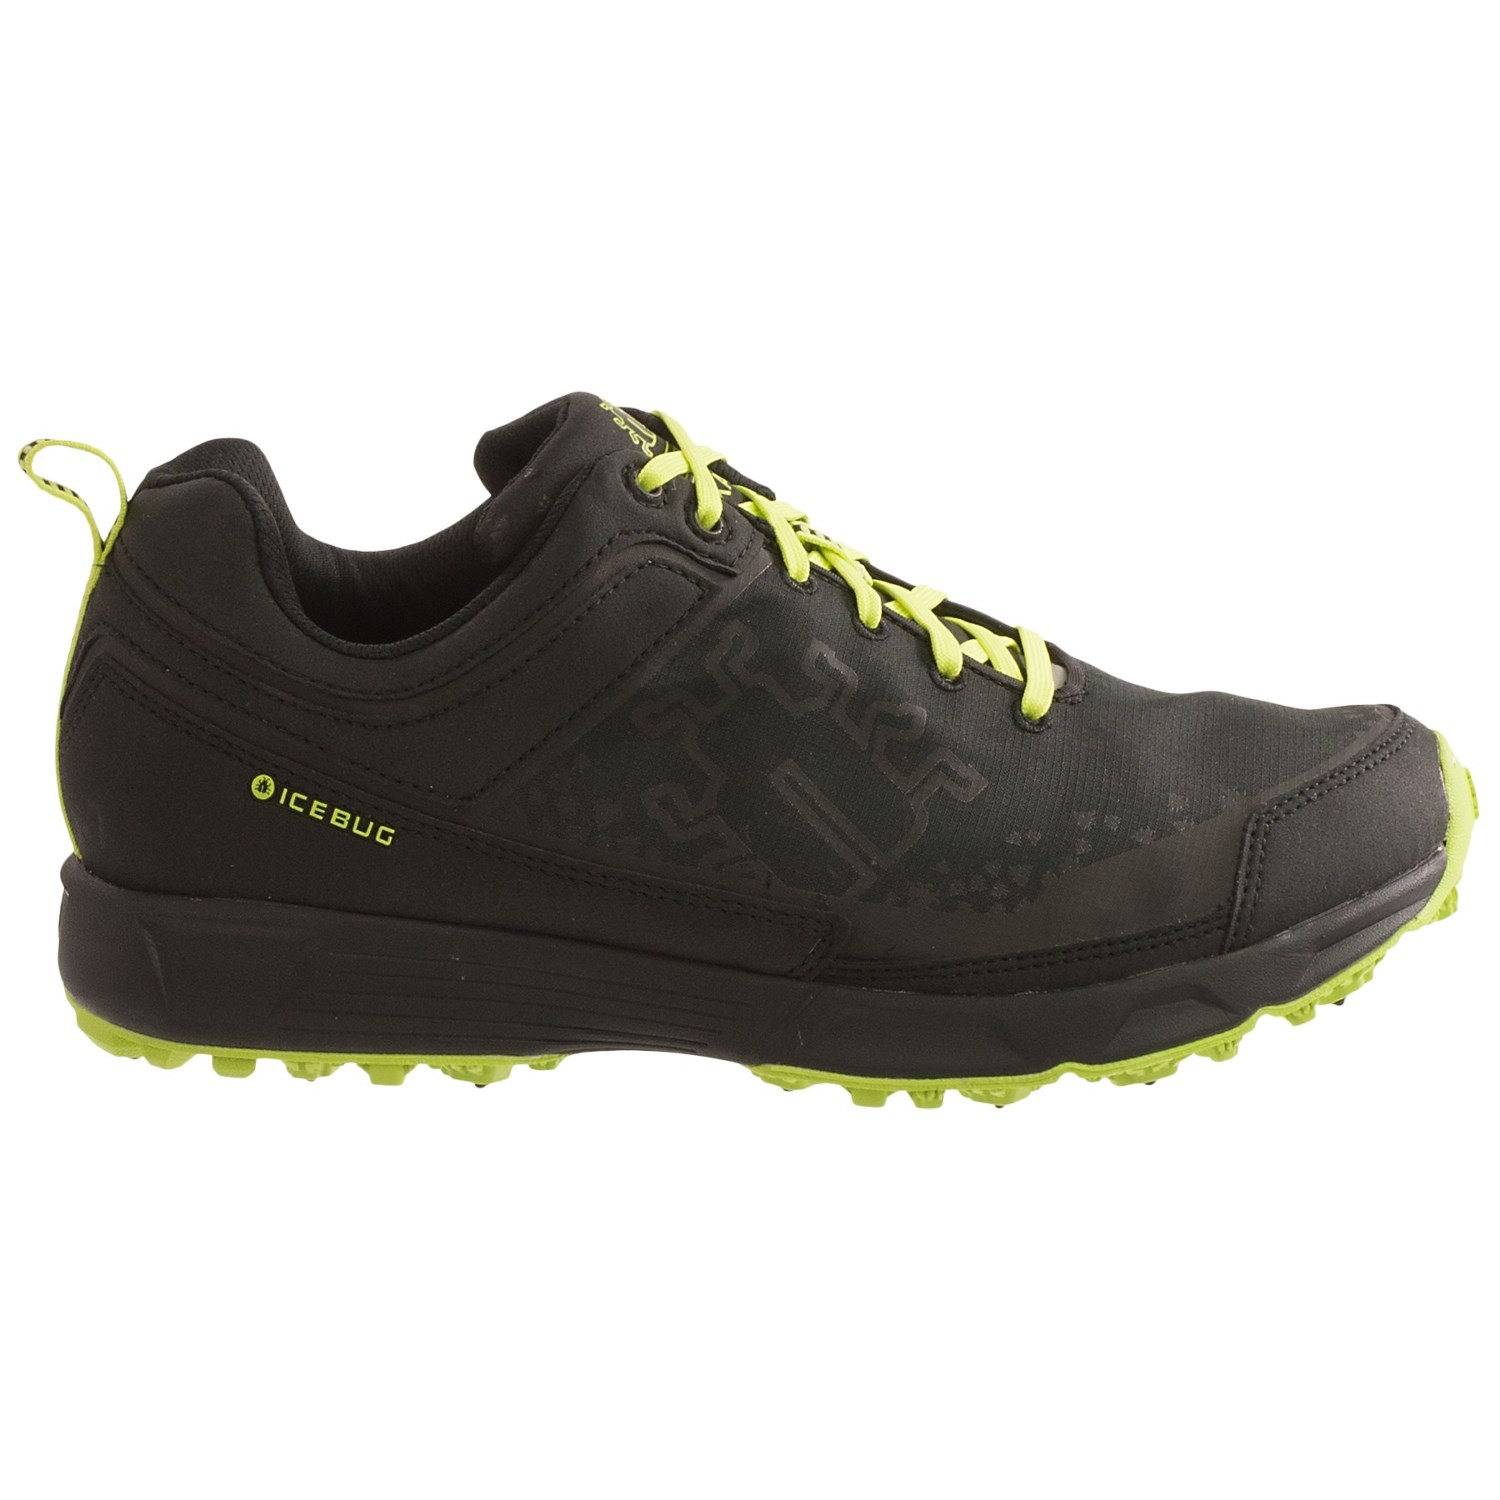 Studded Trail Running Shoes